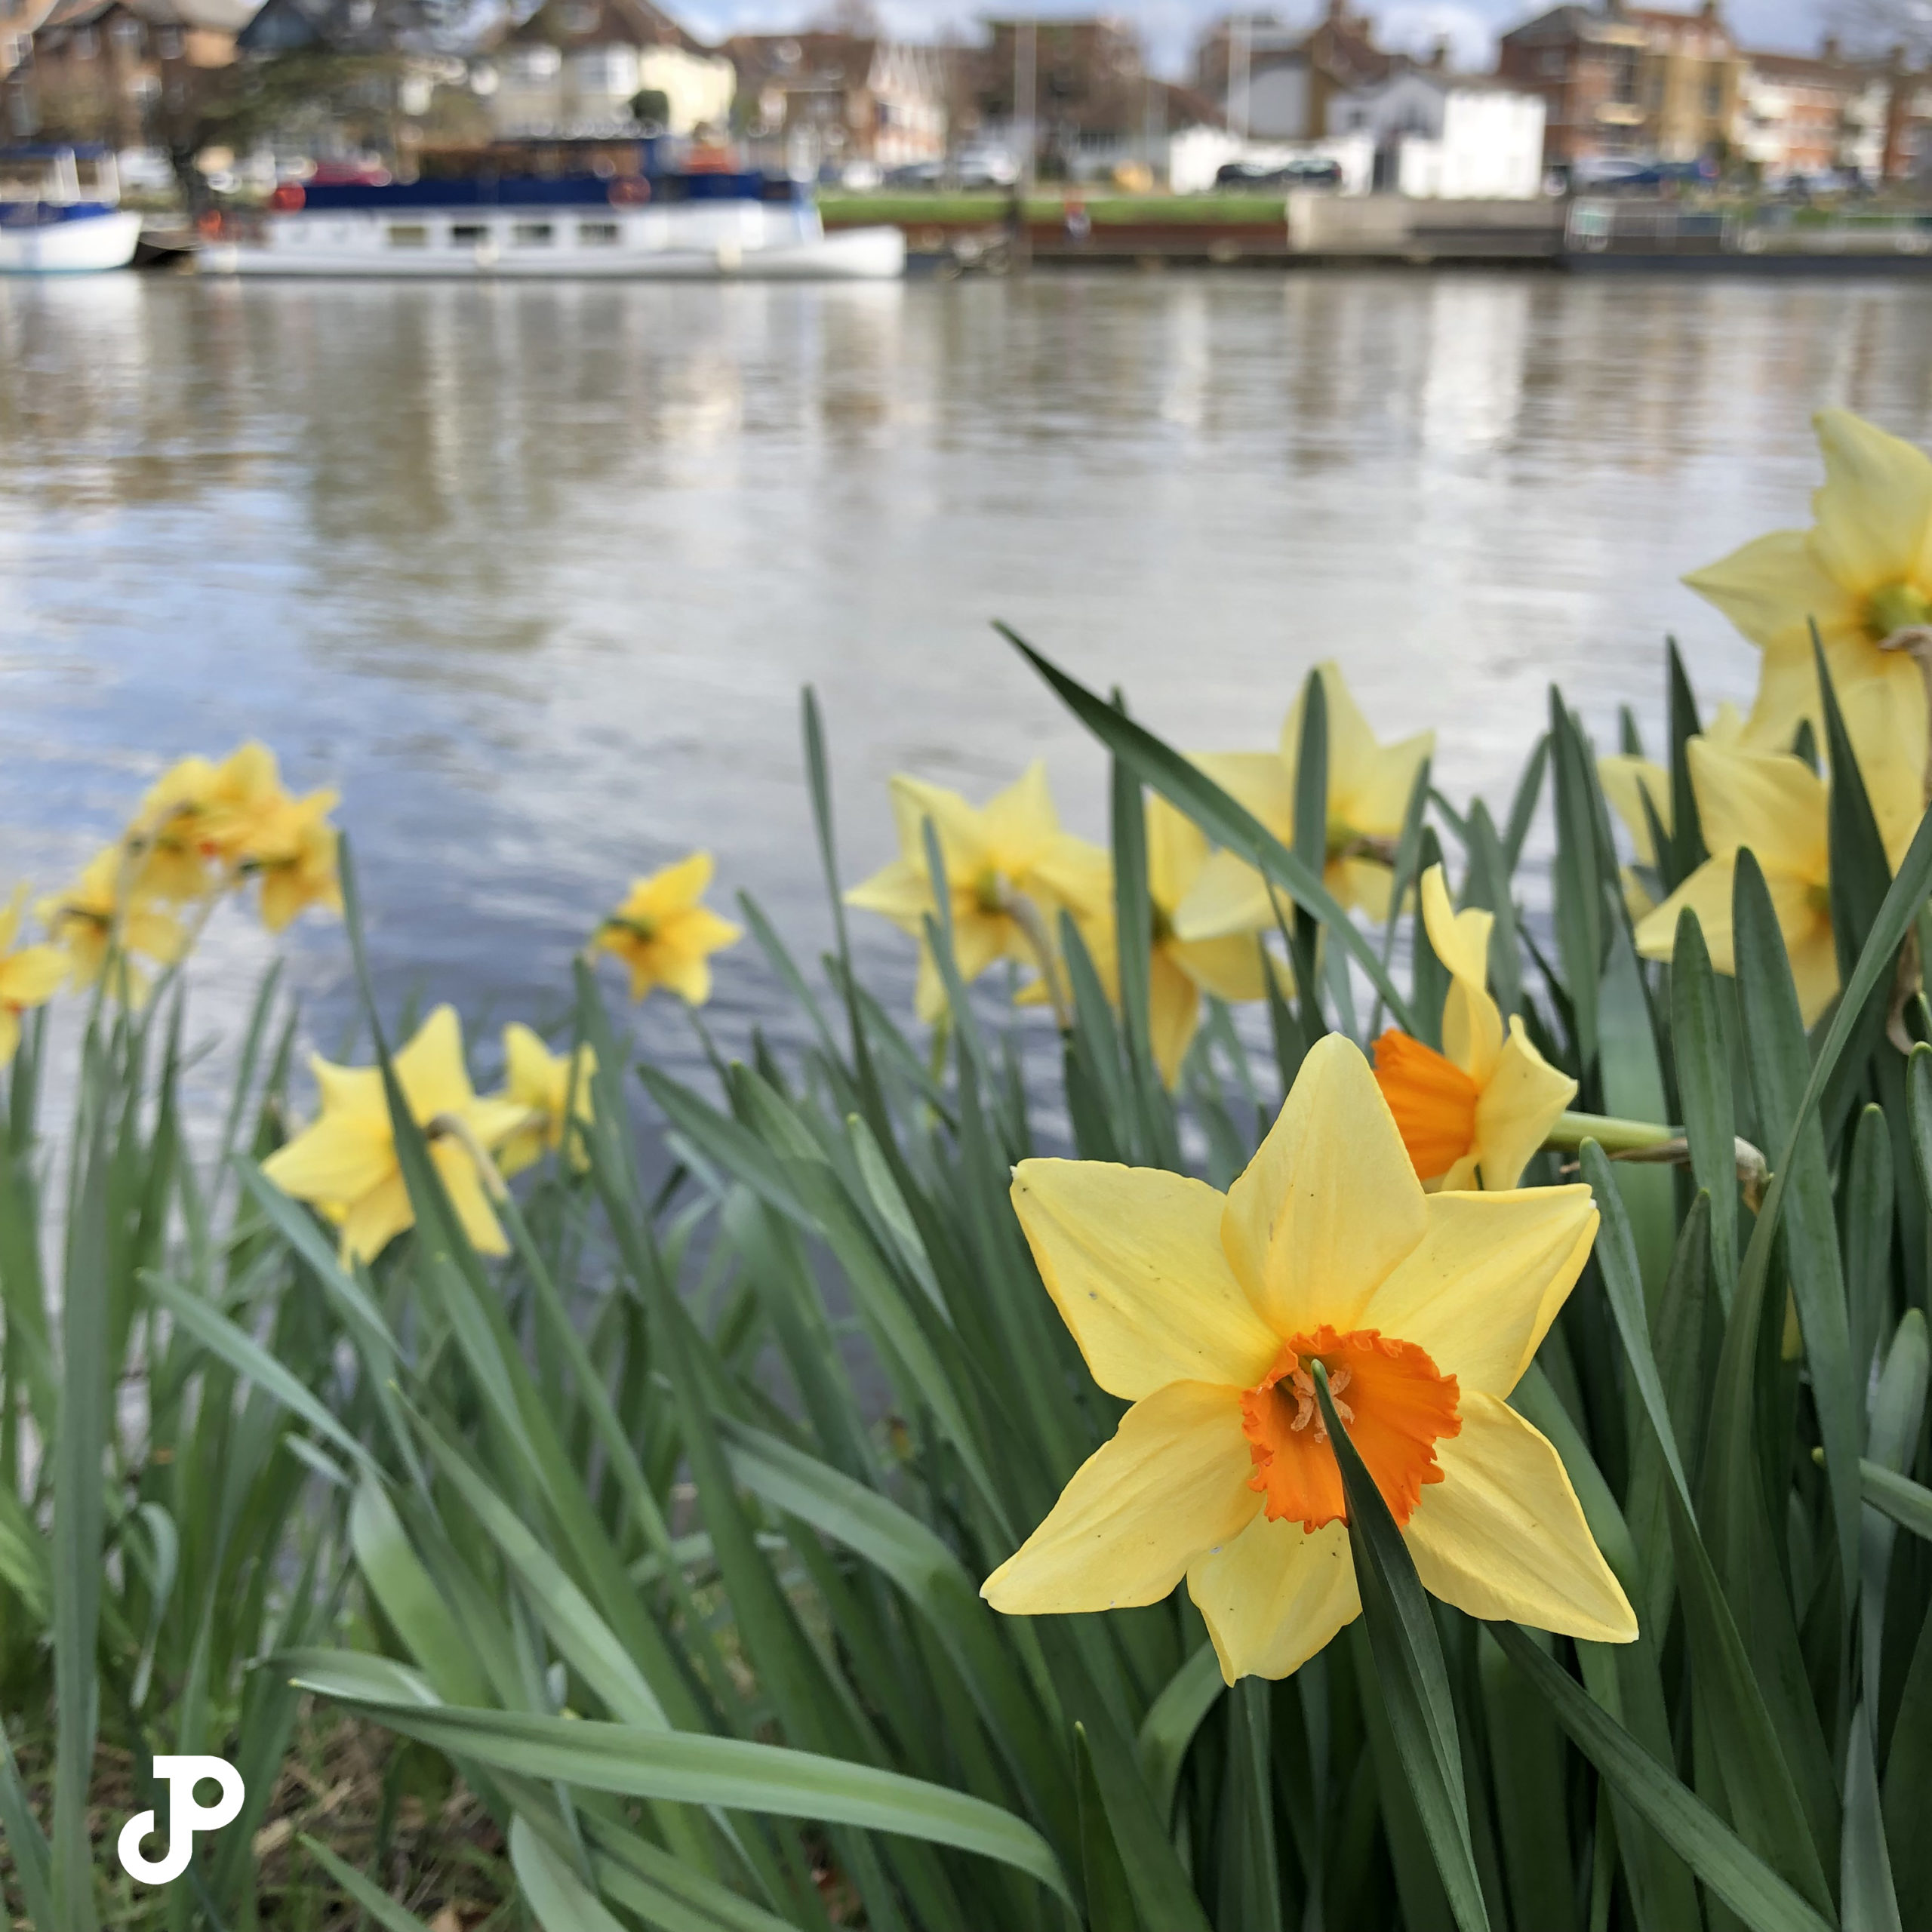 daffodils on a bank of the River Thames in Kingston Upon Thames